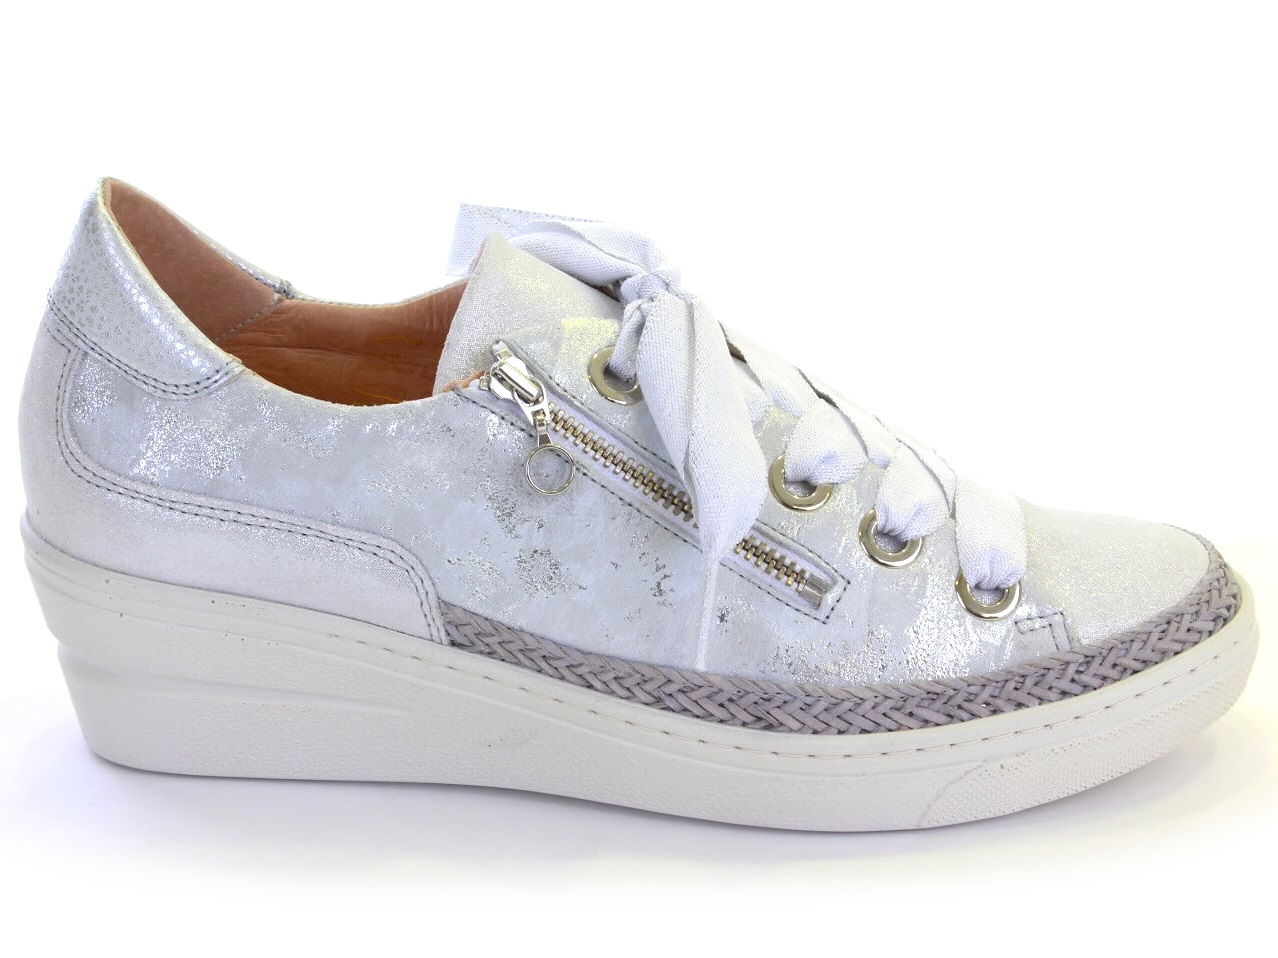 Sneakers and Espadrilles Softwaves - 677 74001